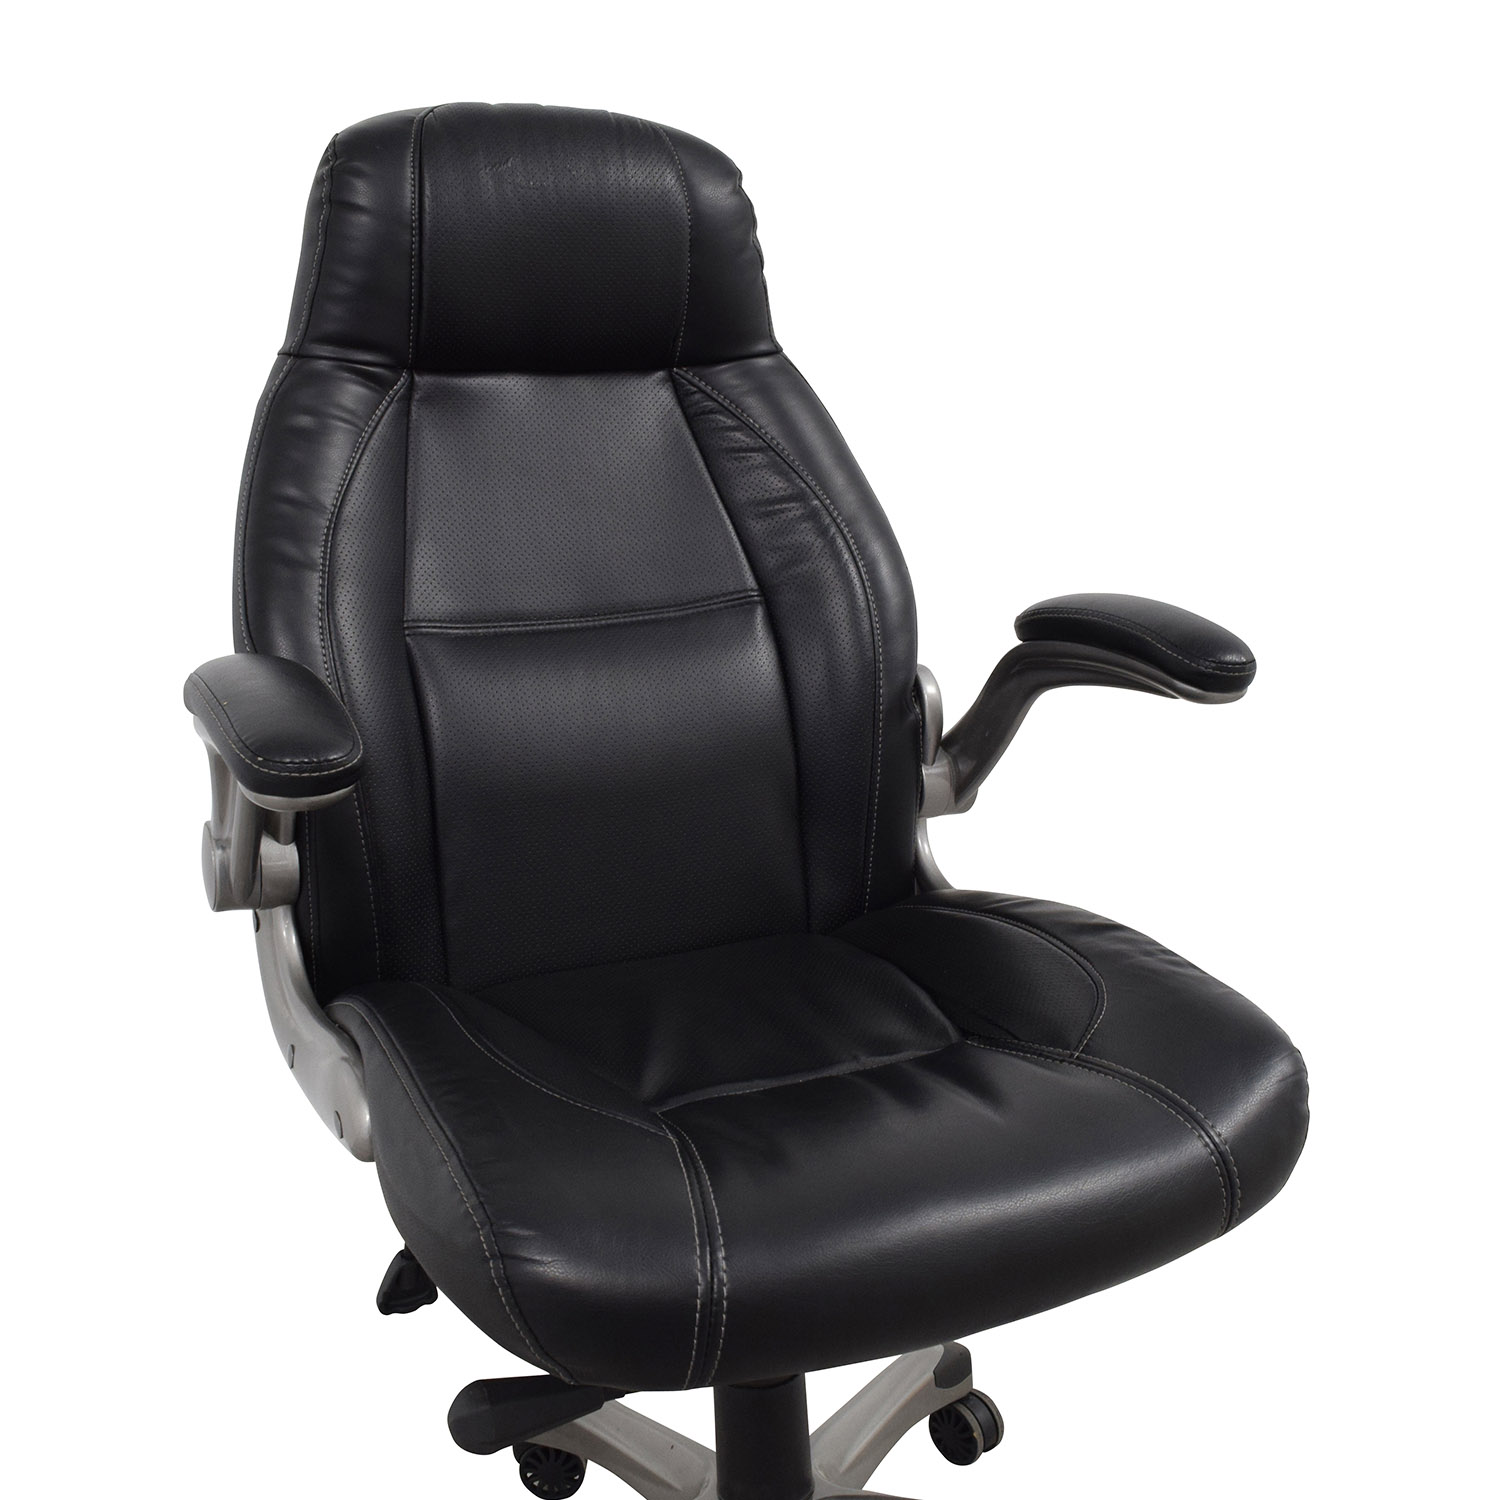 Staples Staples Torrent High-Back Executive Chair in Black nyc